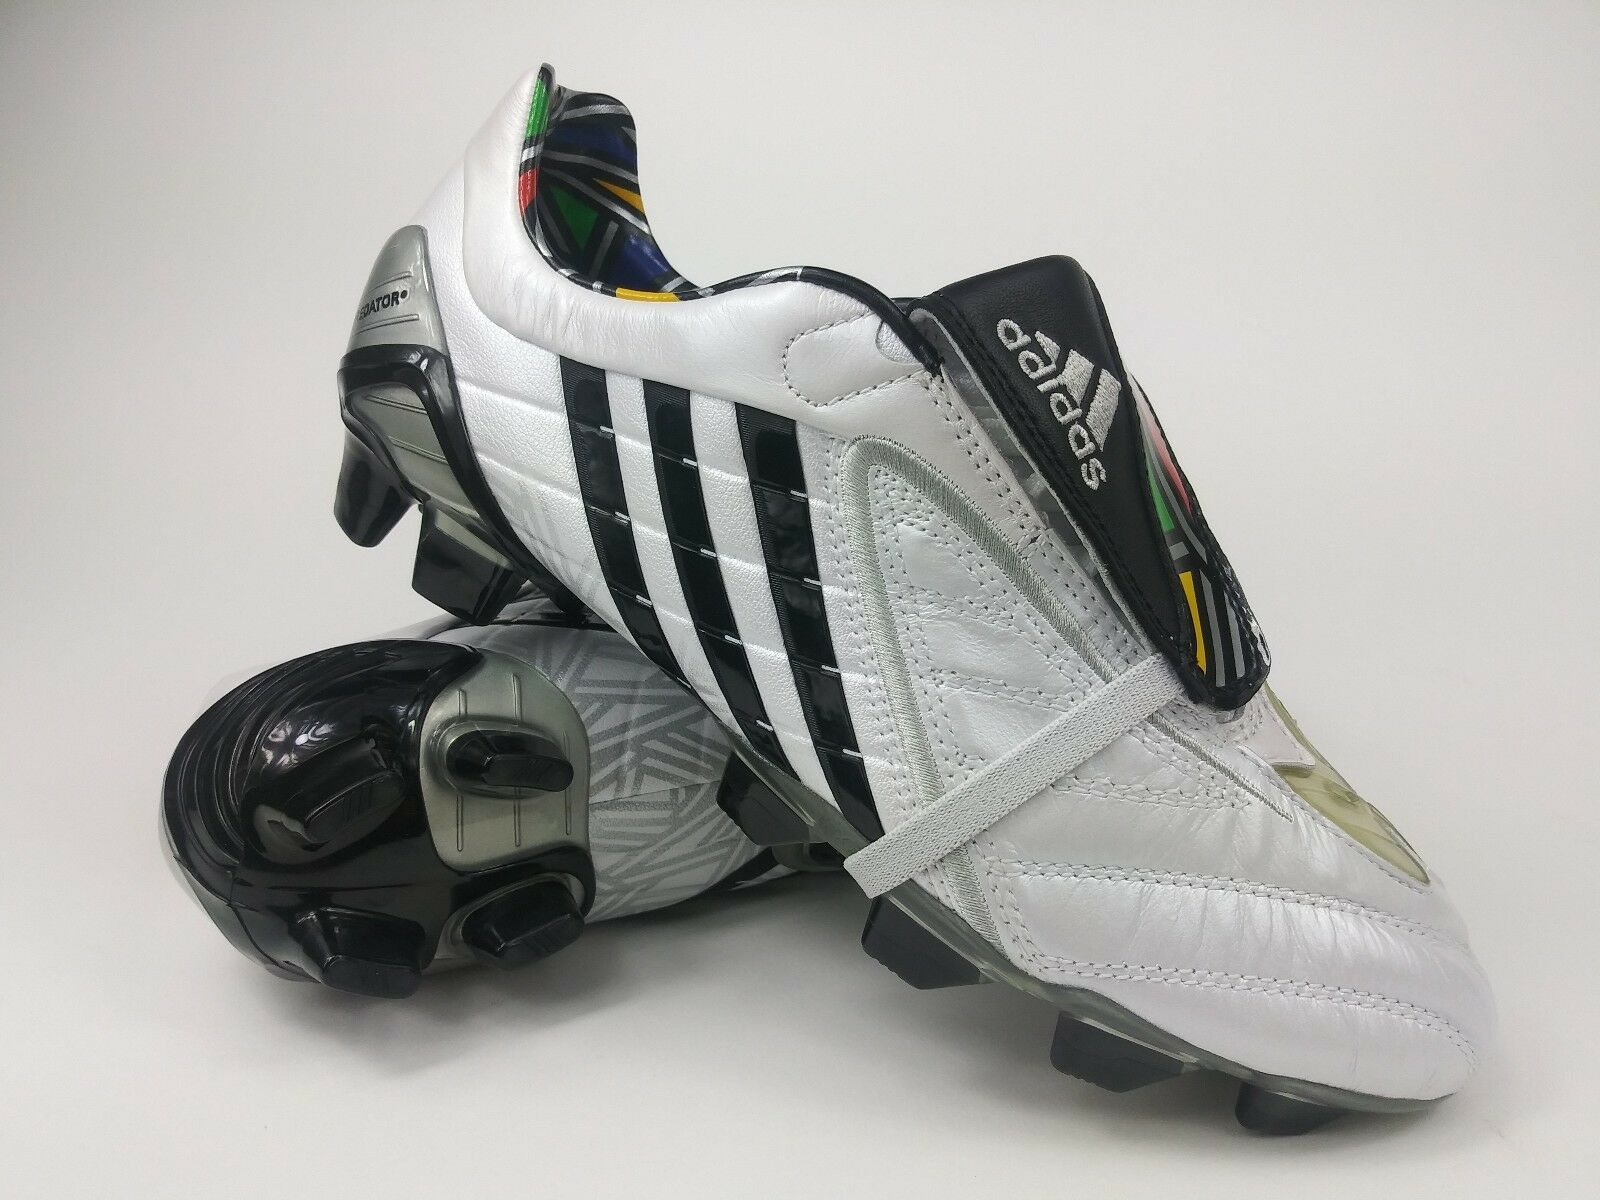 Adidas Projoator Powerswerve TRX Fg Confed Taza 2009 G02400 Rare Limited Edition